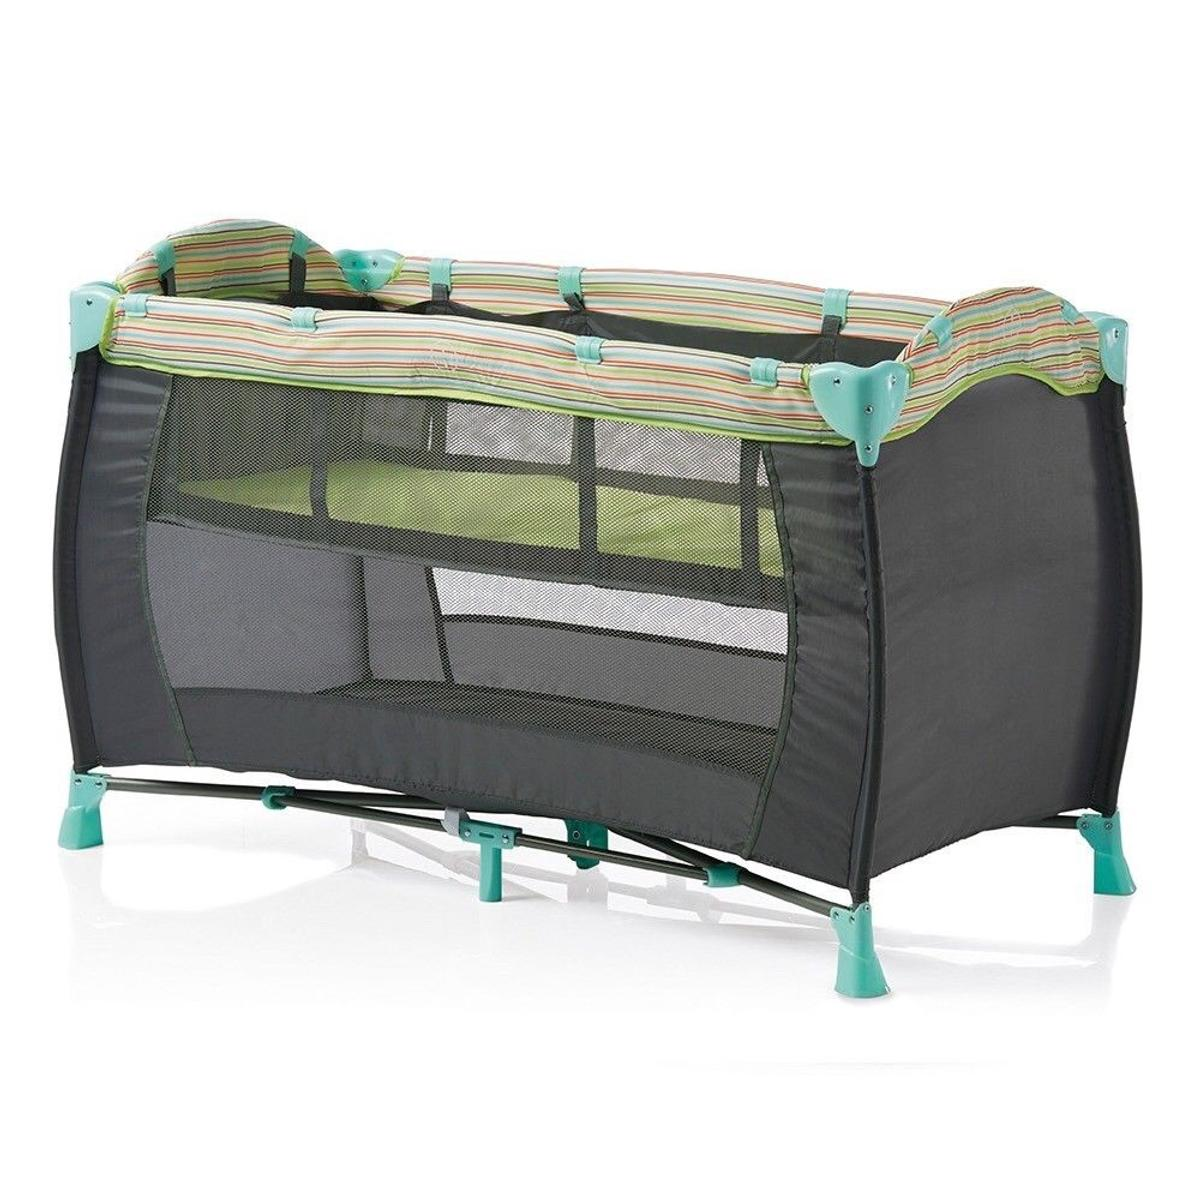 0d685a343 UNOPENED Zobo Woodland Friends Travel Cot in Sheffield for £30.00 ...